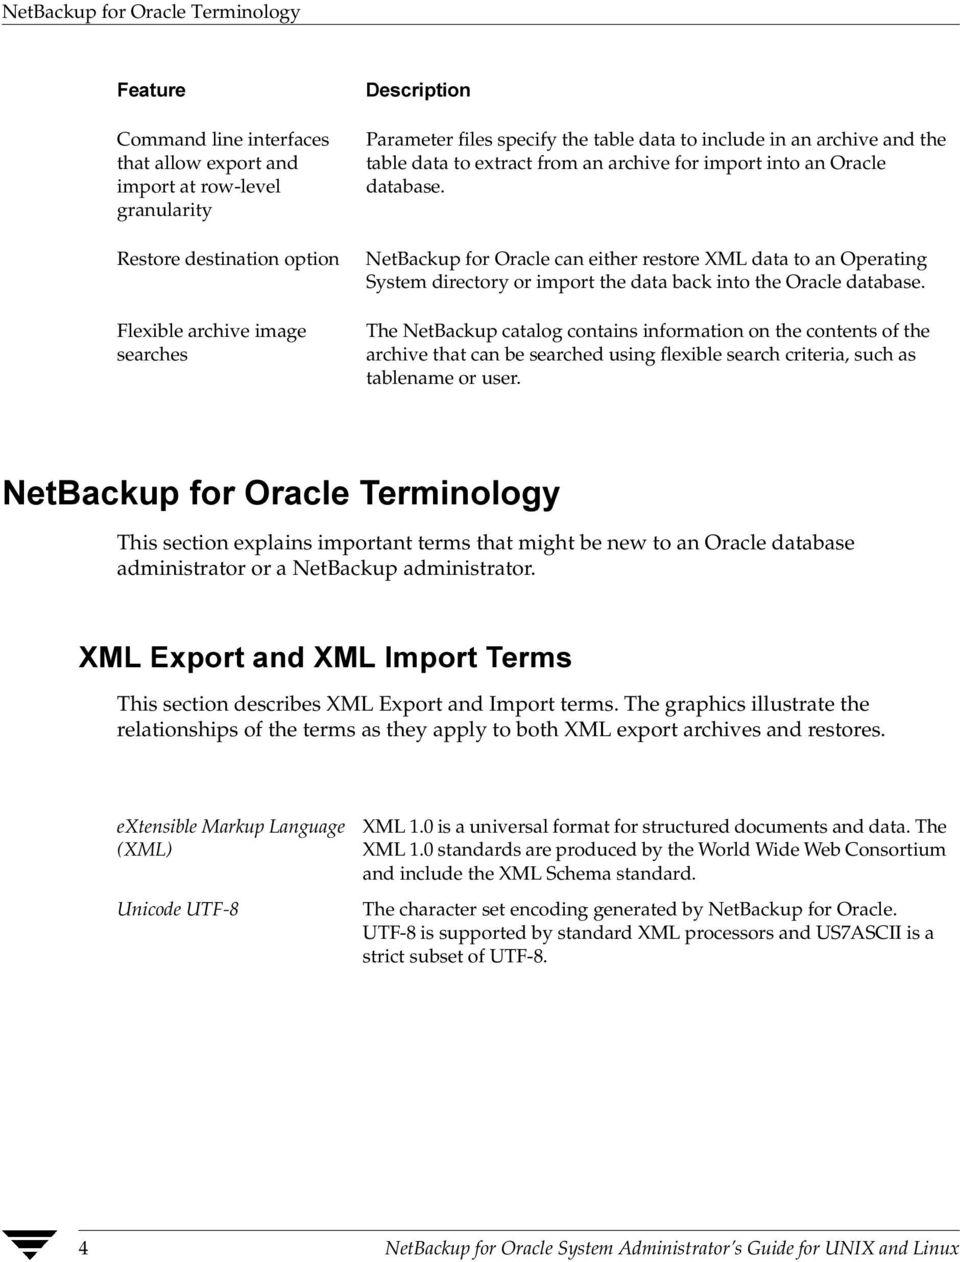 NetBackup for Oracle can either restore XML data to an Operating System directory or import the data back into the Oracle database.